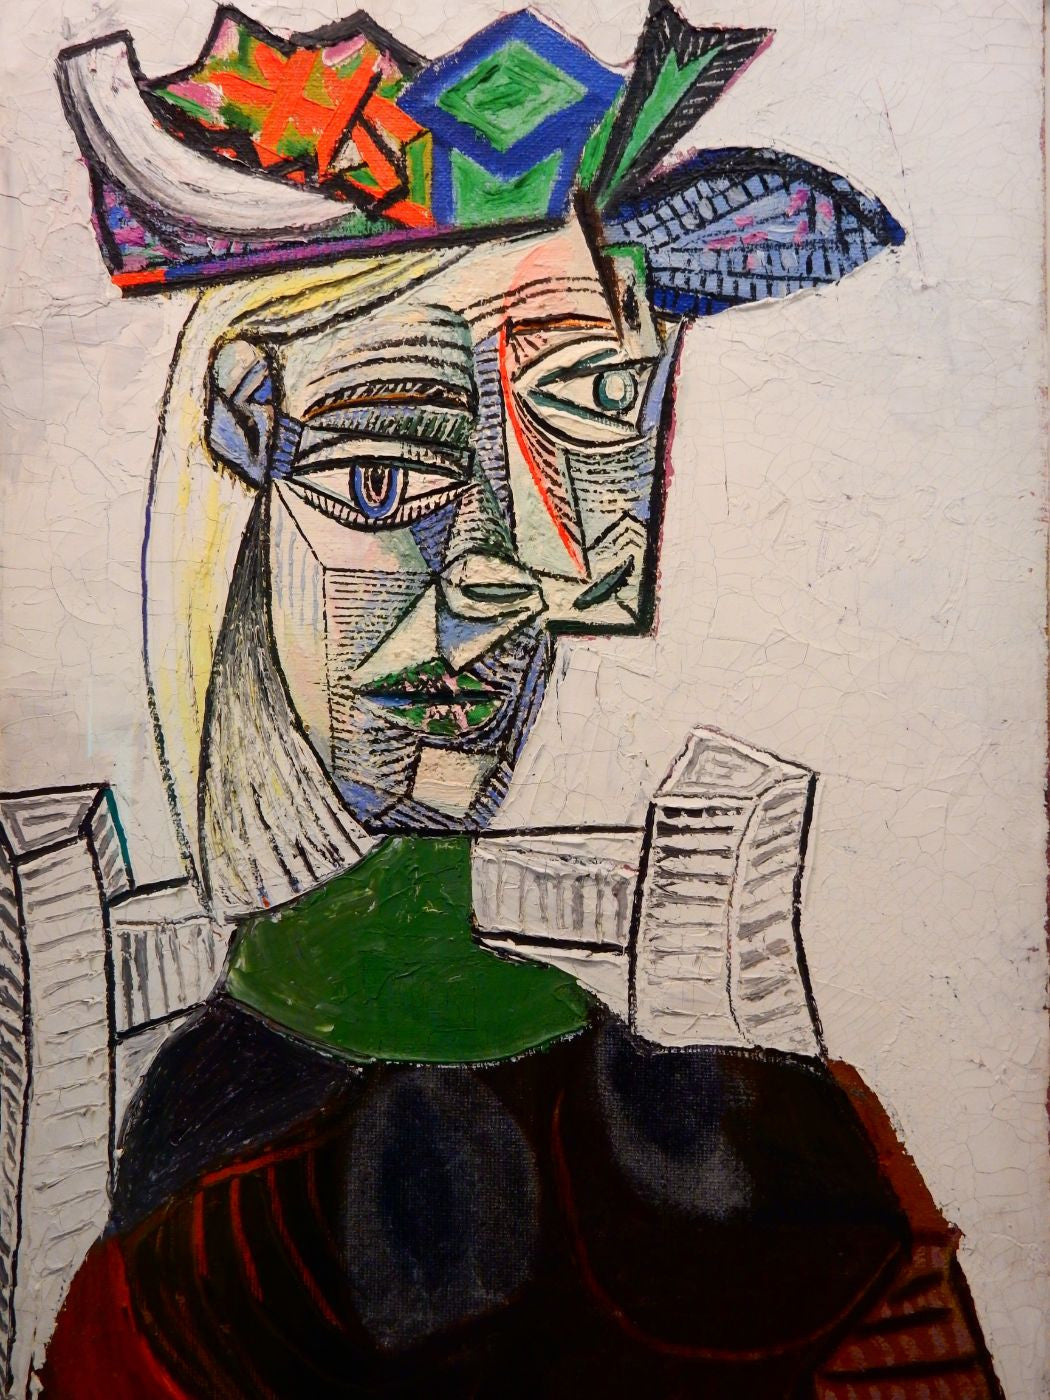 Pablo Picasso - Femme Assise Au Chapeau -Seated Woman in a Hat - Art ...